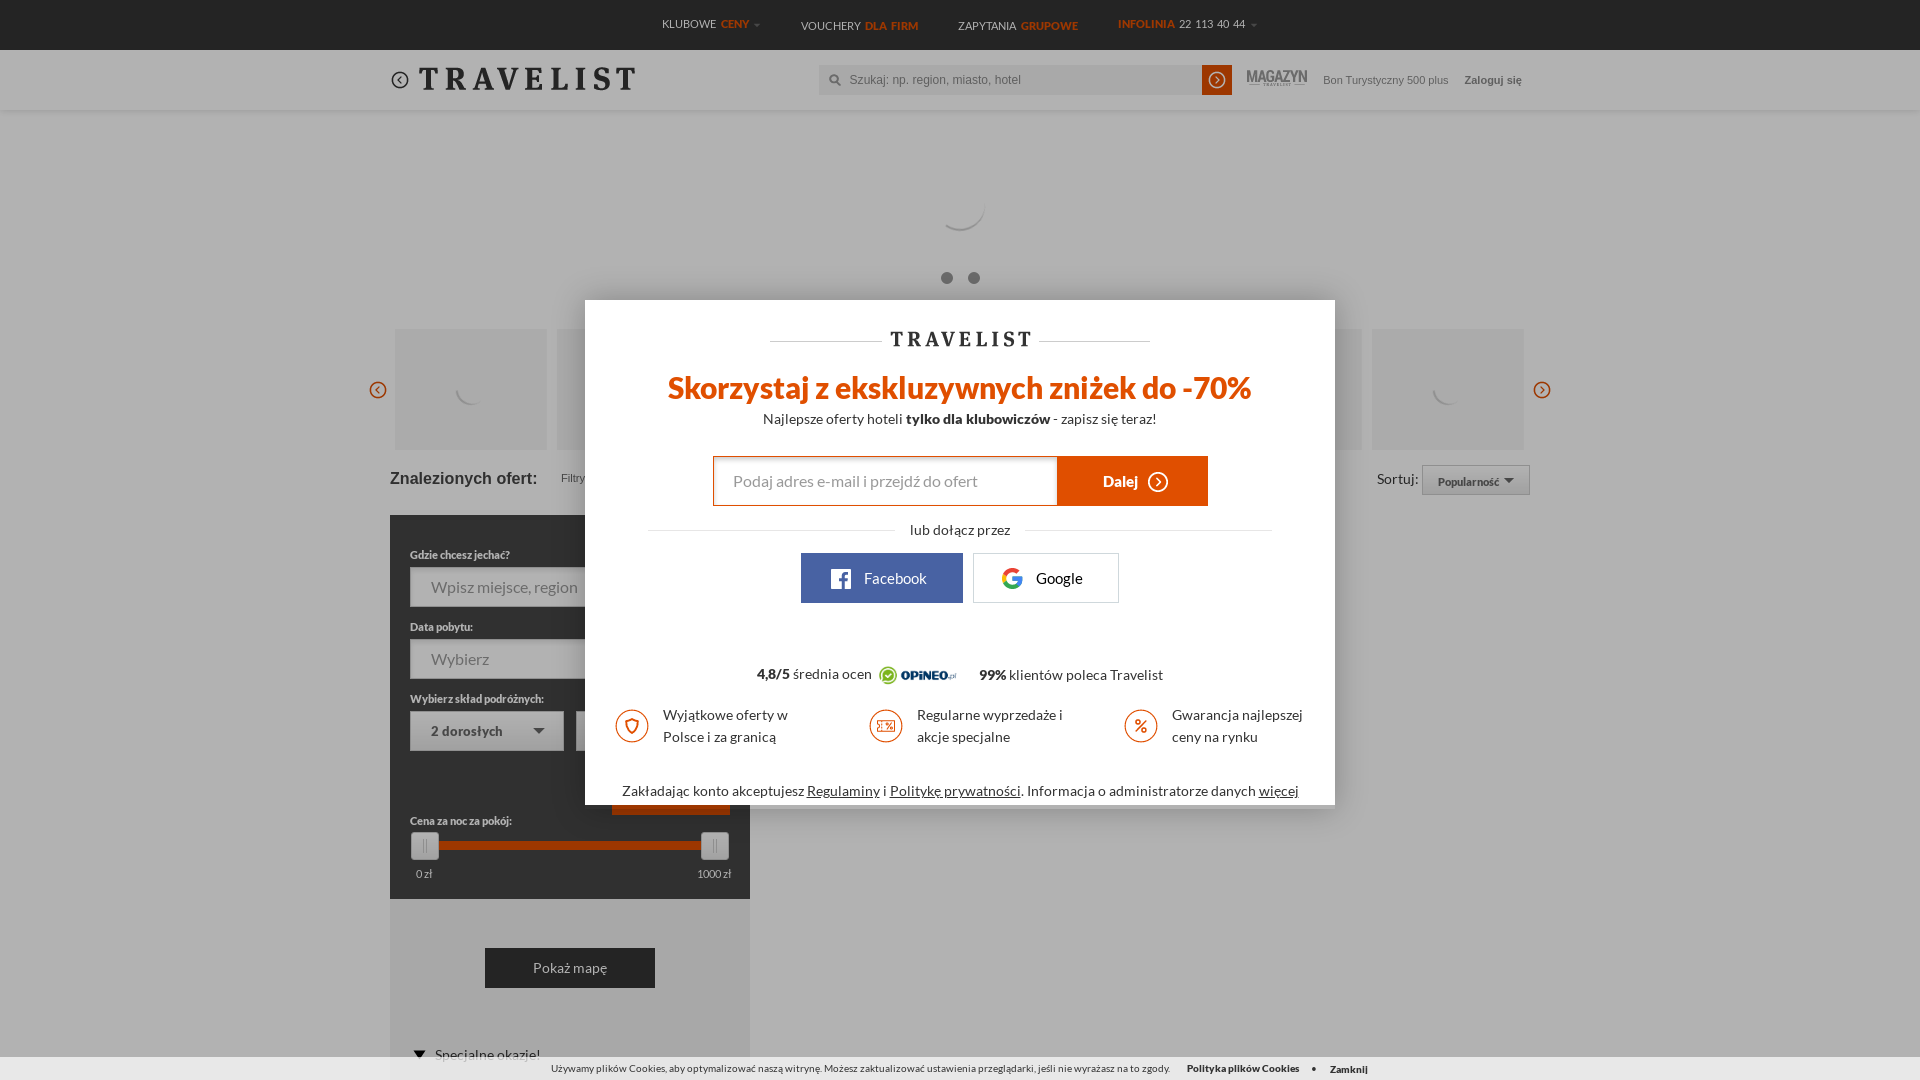 Travelist PL website